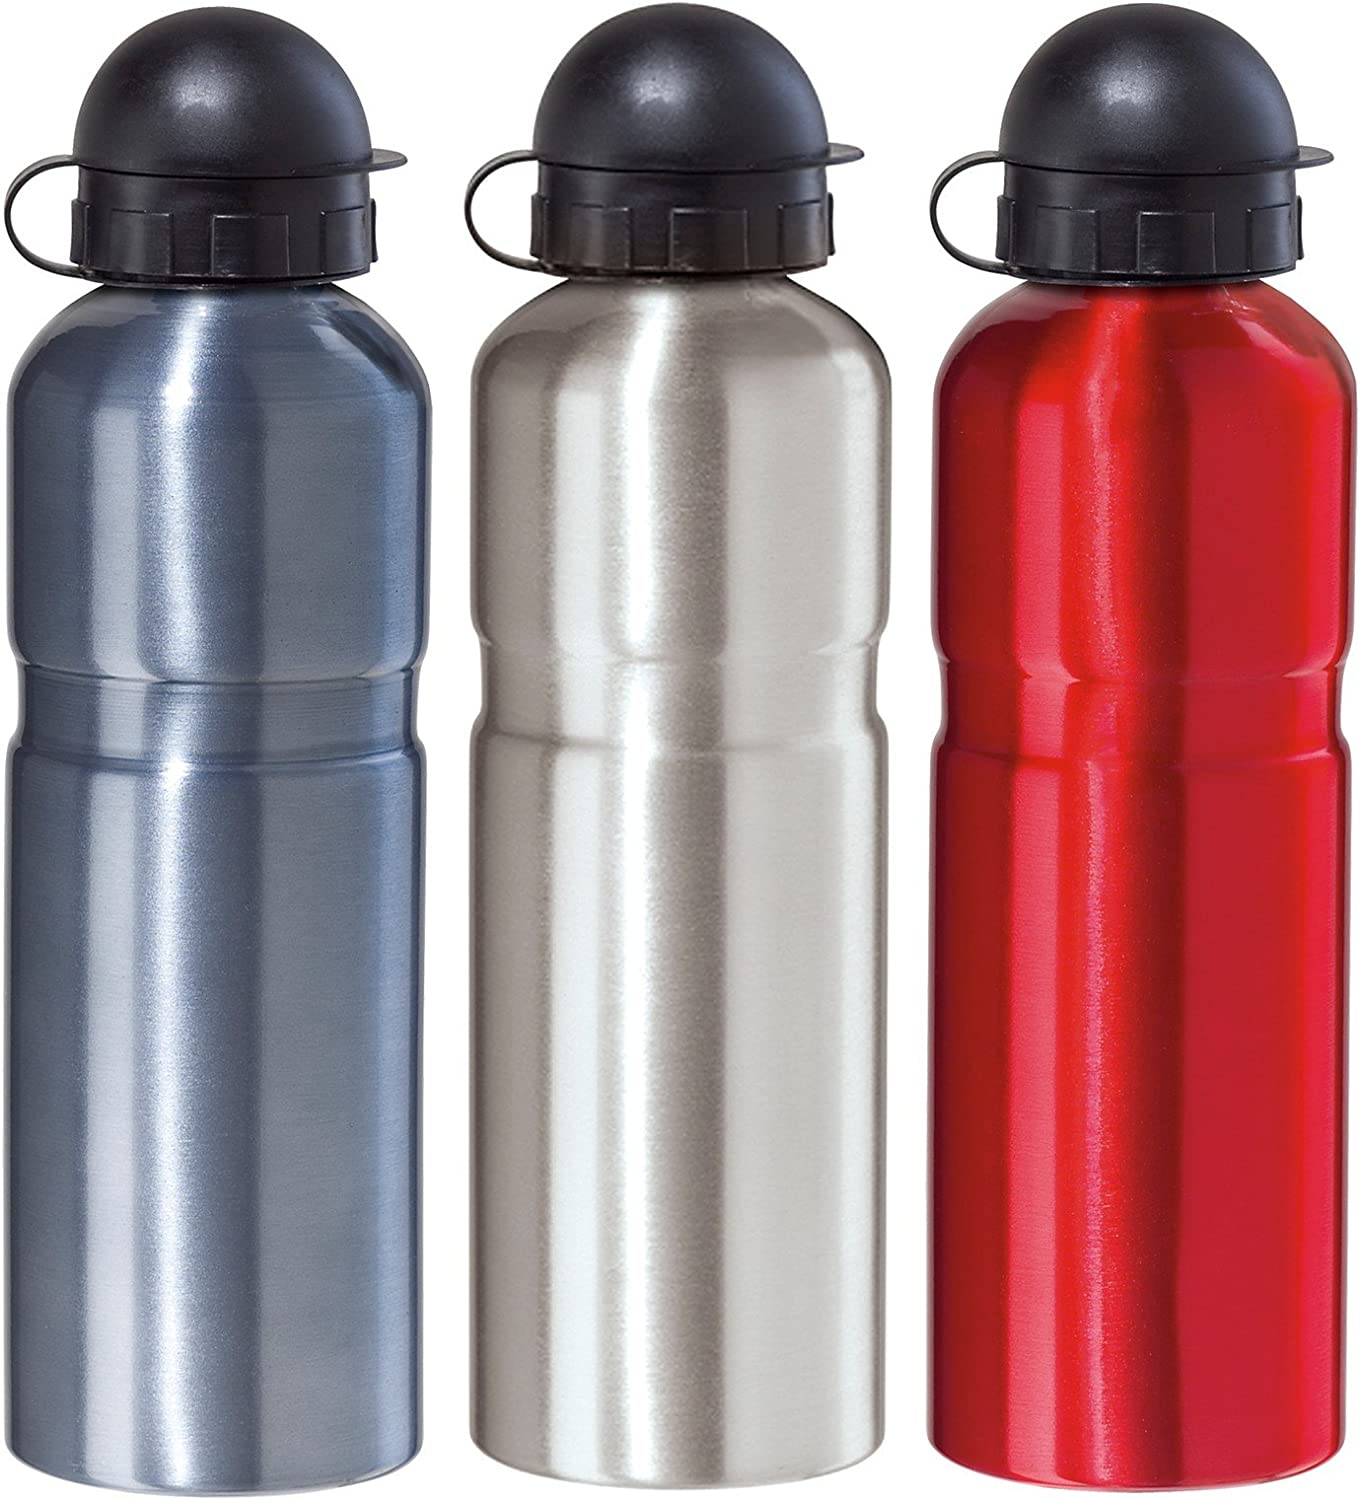 Oggi Stainless Steel Lustre Sports Bottle .75 Liter   25 Ounce with Locking Pull Out Drinking Spout, blueee